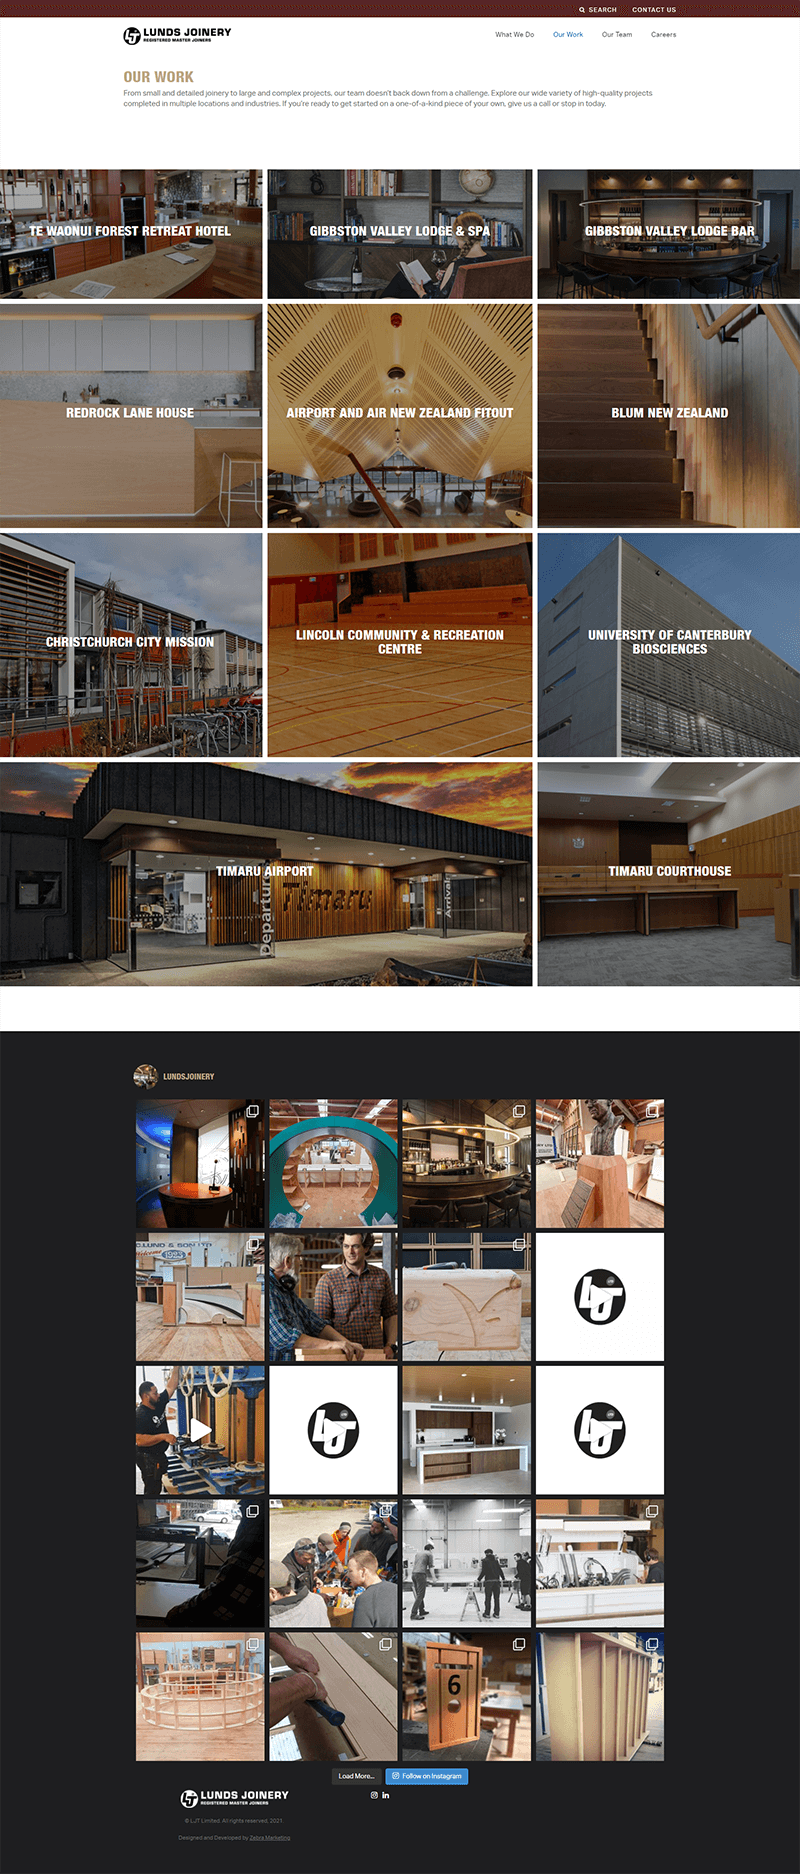 Lunds Our Work page